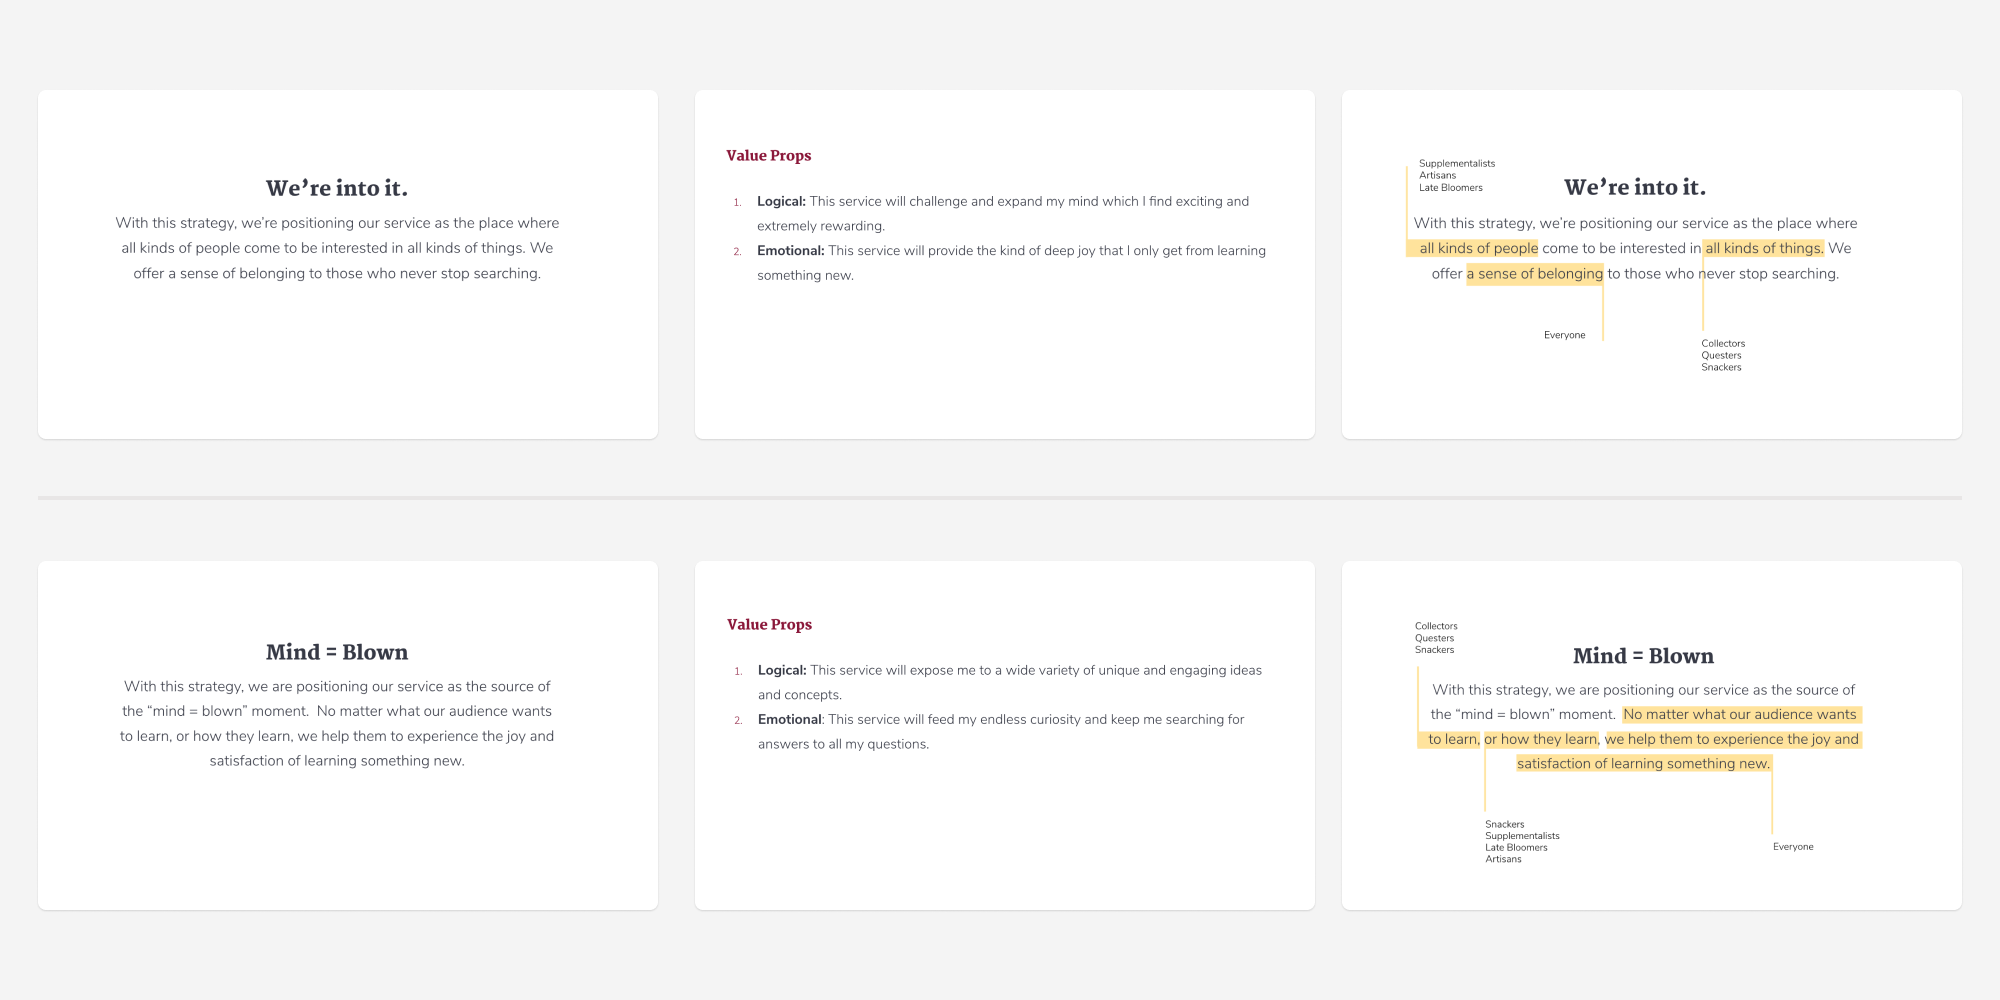 Six slides from a presentation showing the Strategy title, the value propositions, and a dissecting of the strategy statement for both final strategies.